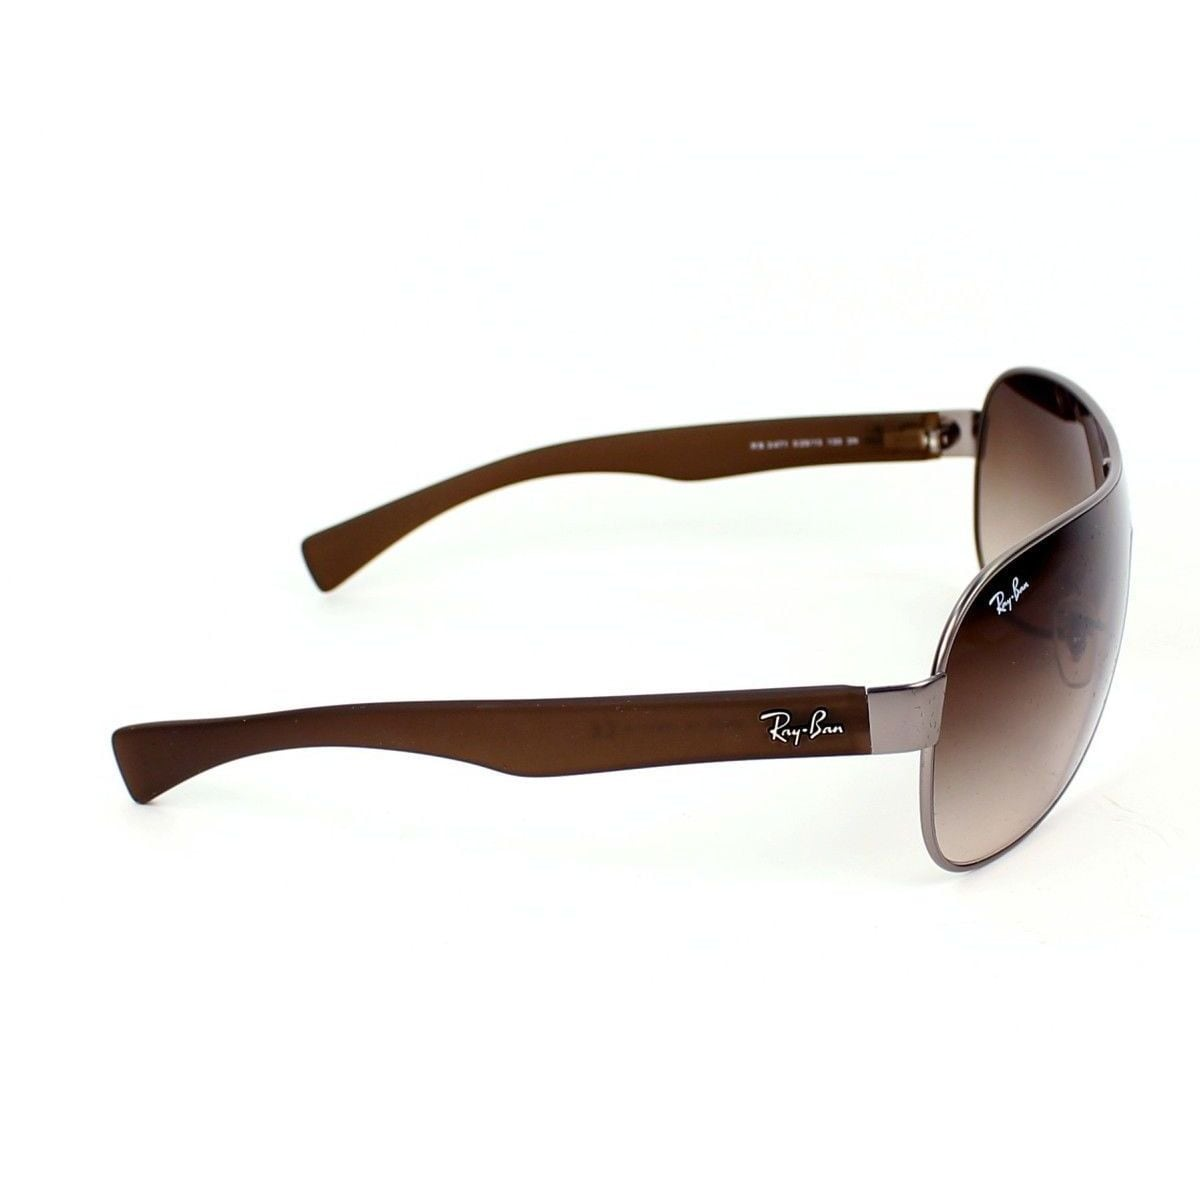 47a84f21ed5b Shop Ray-Ban RB3471 029 13 Silver Brown Frame Brown Gradient 32mm Single  Lens Sunglasses - Free Shipping Today - Overstock - 14328123